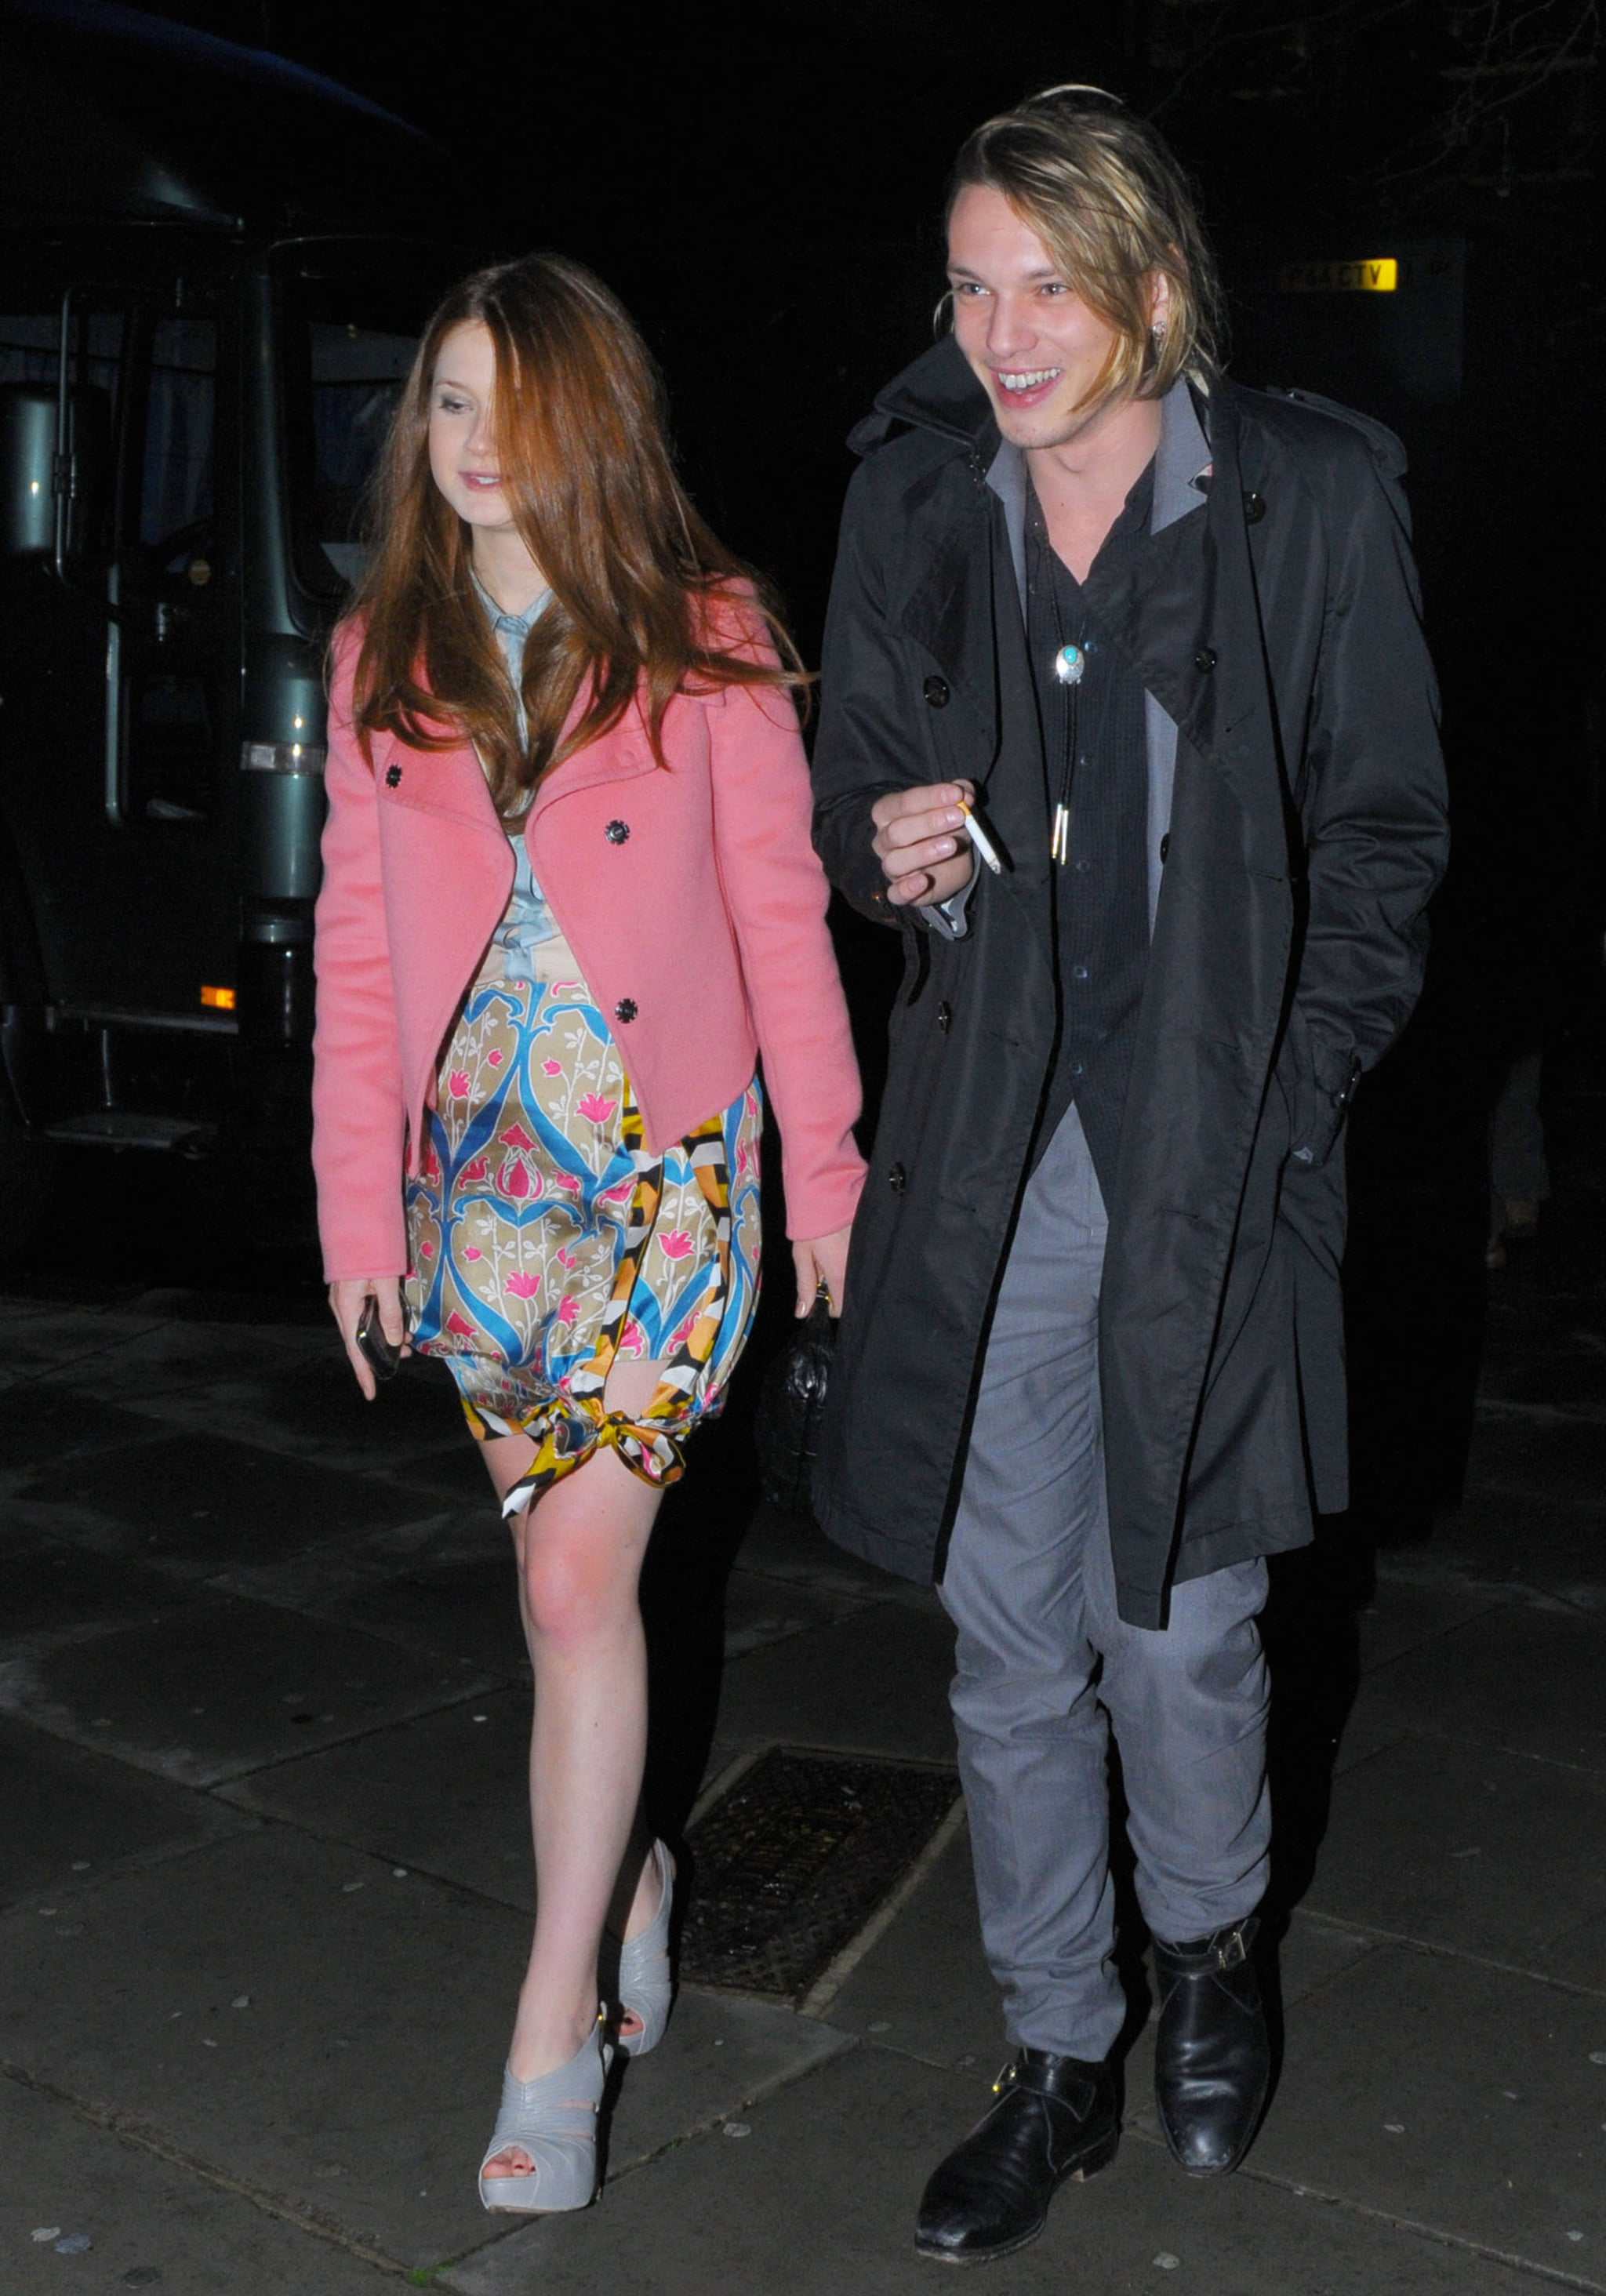 photos of bonnie wright and jamie campbell bower leaving